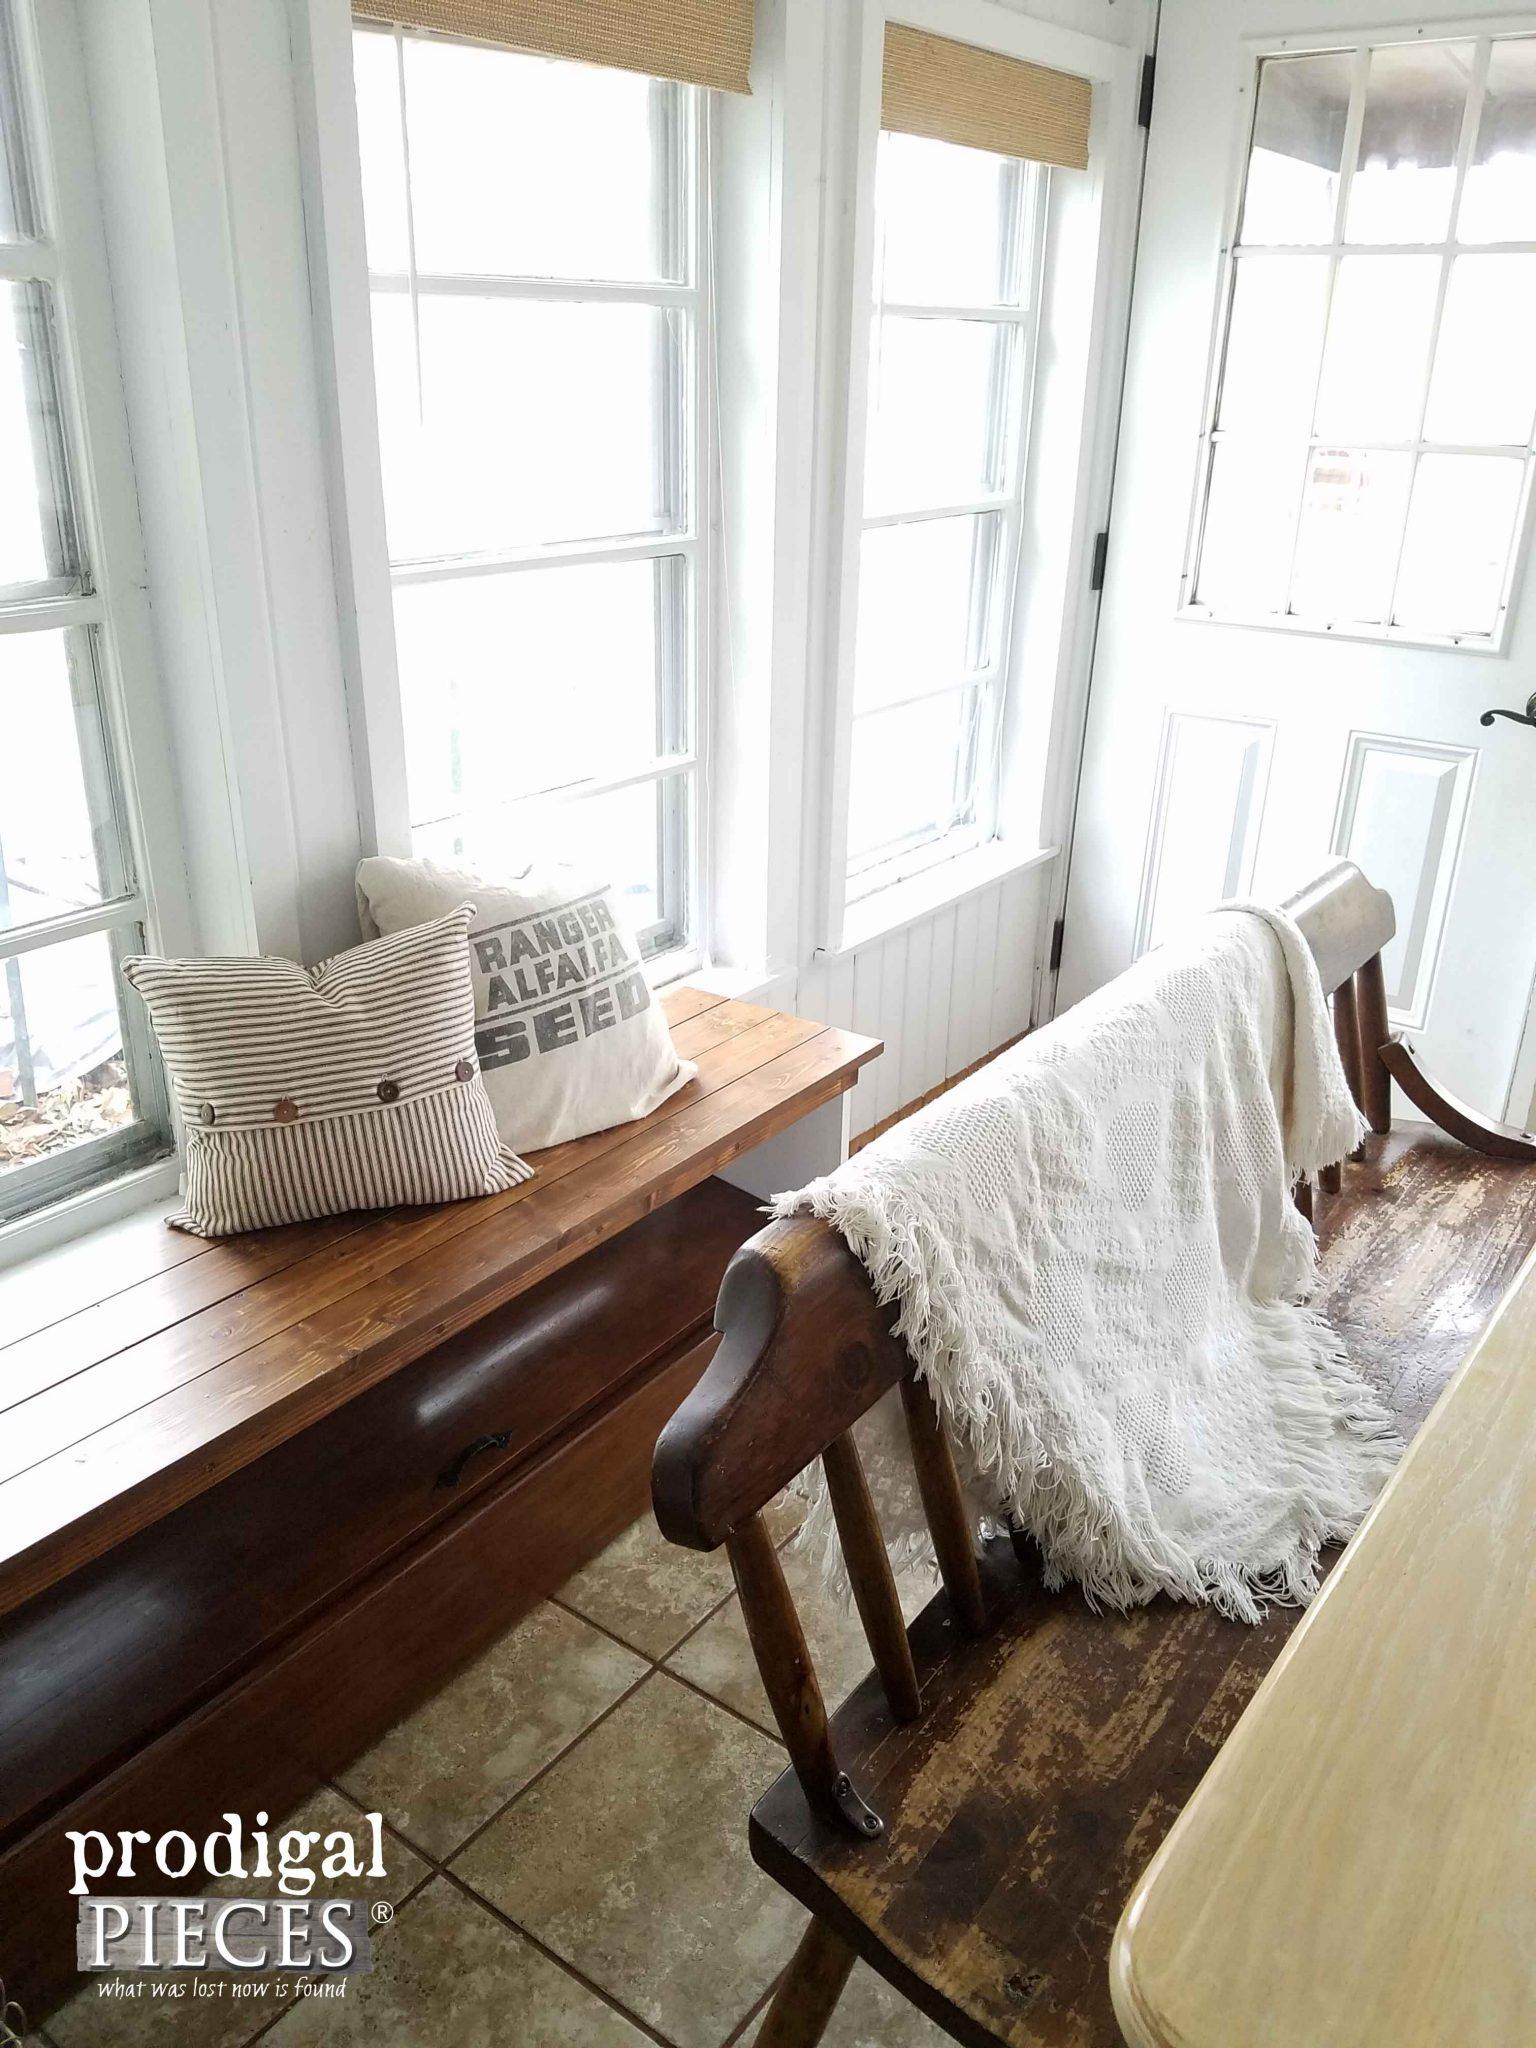 Farmhouse Benches ~ One from a repurposed headboard and the other a vintage find. Fun! | Prodigal Pieces | prodigalpieces.com